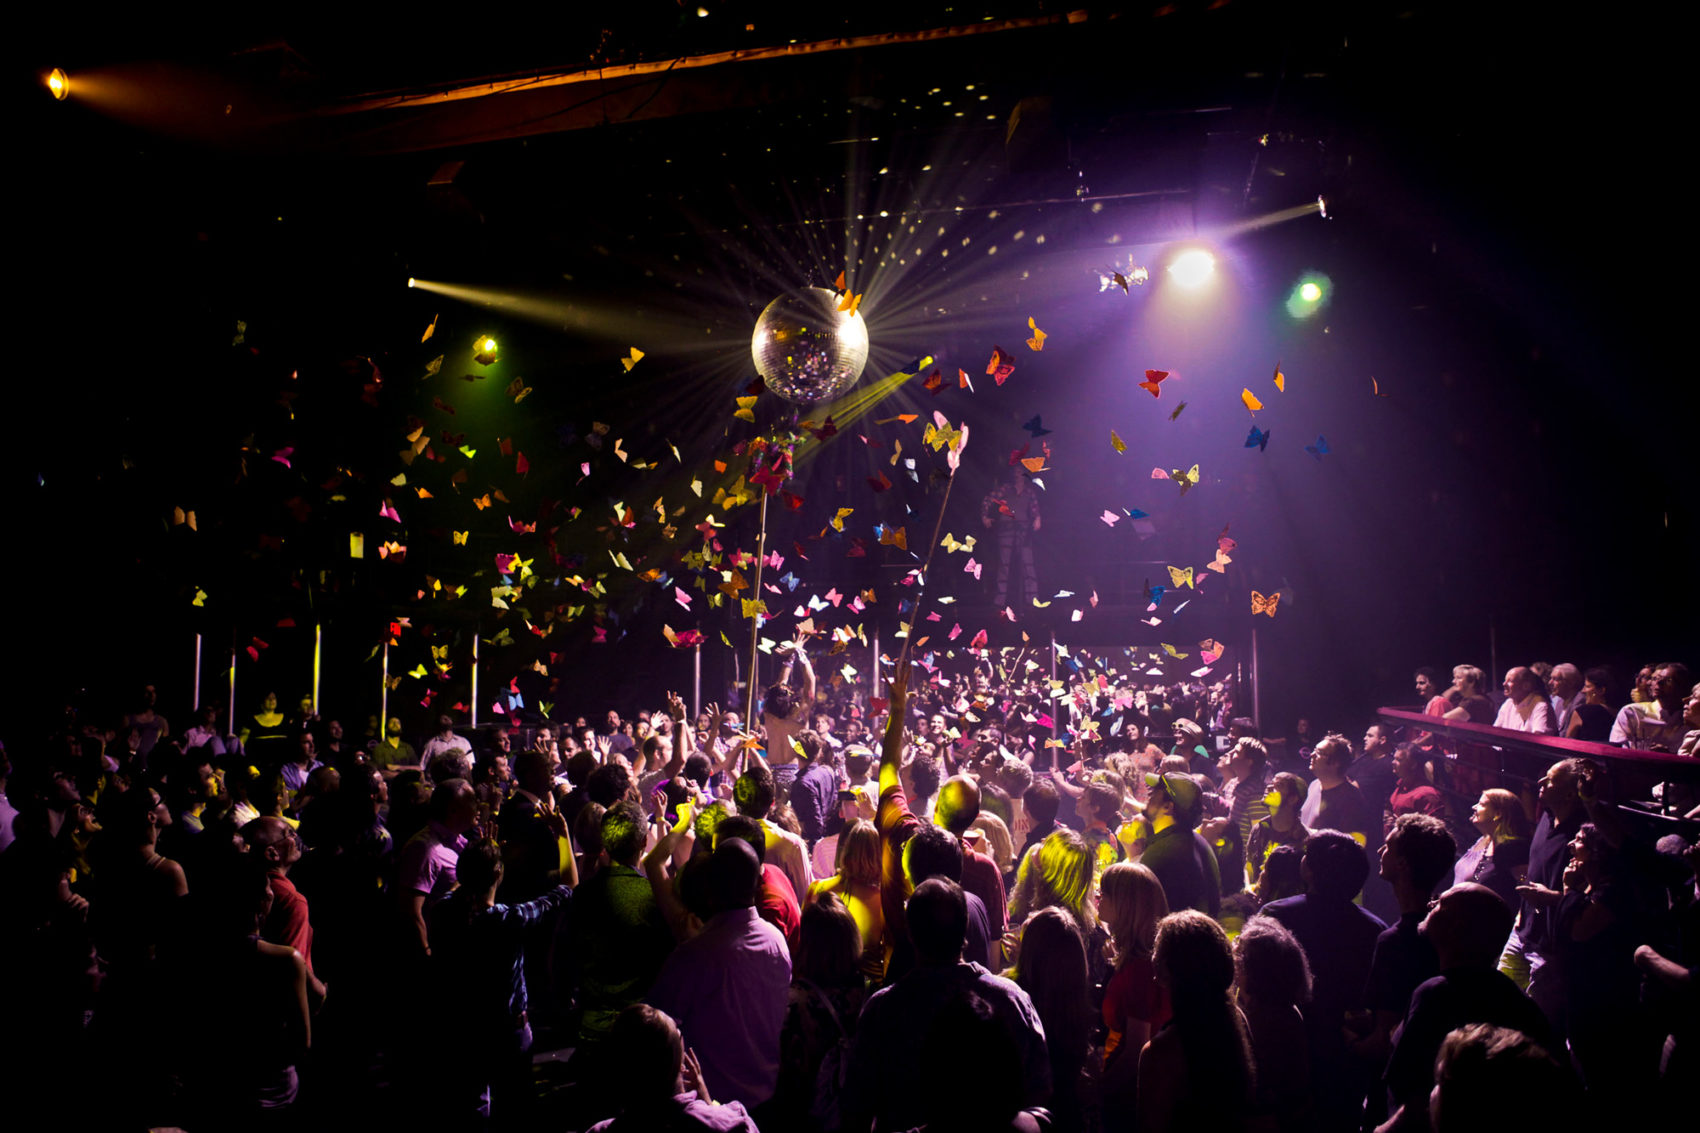 """""""The Donkey Show,"""" a disco-themed version of Shakespeare's """"A Midsummer Night's Dream,"""" ran for a decade at Oberon until 2019. (Courtesy Marcus Stern/A.R.T.)"""